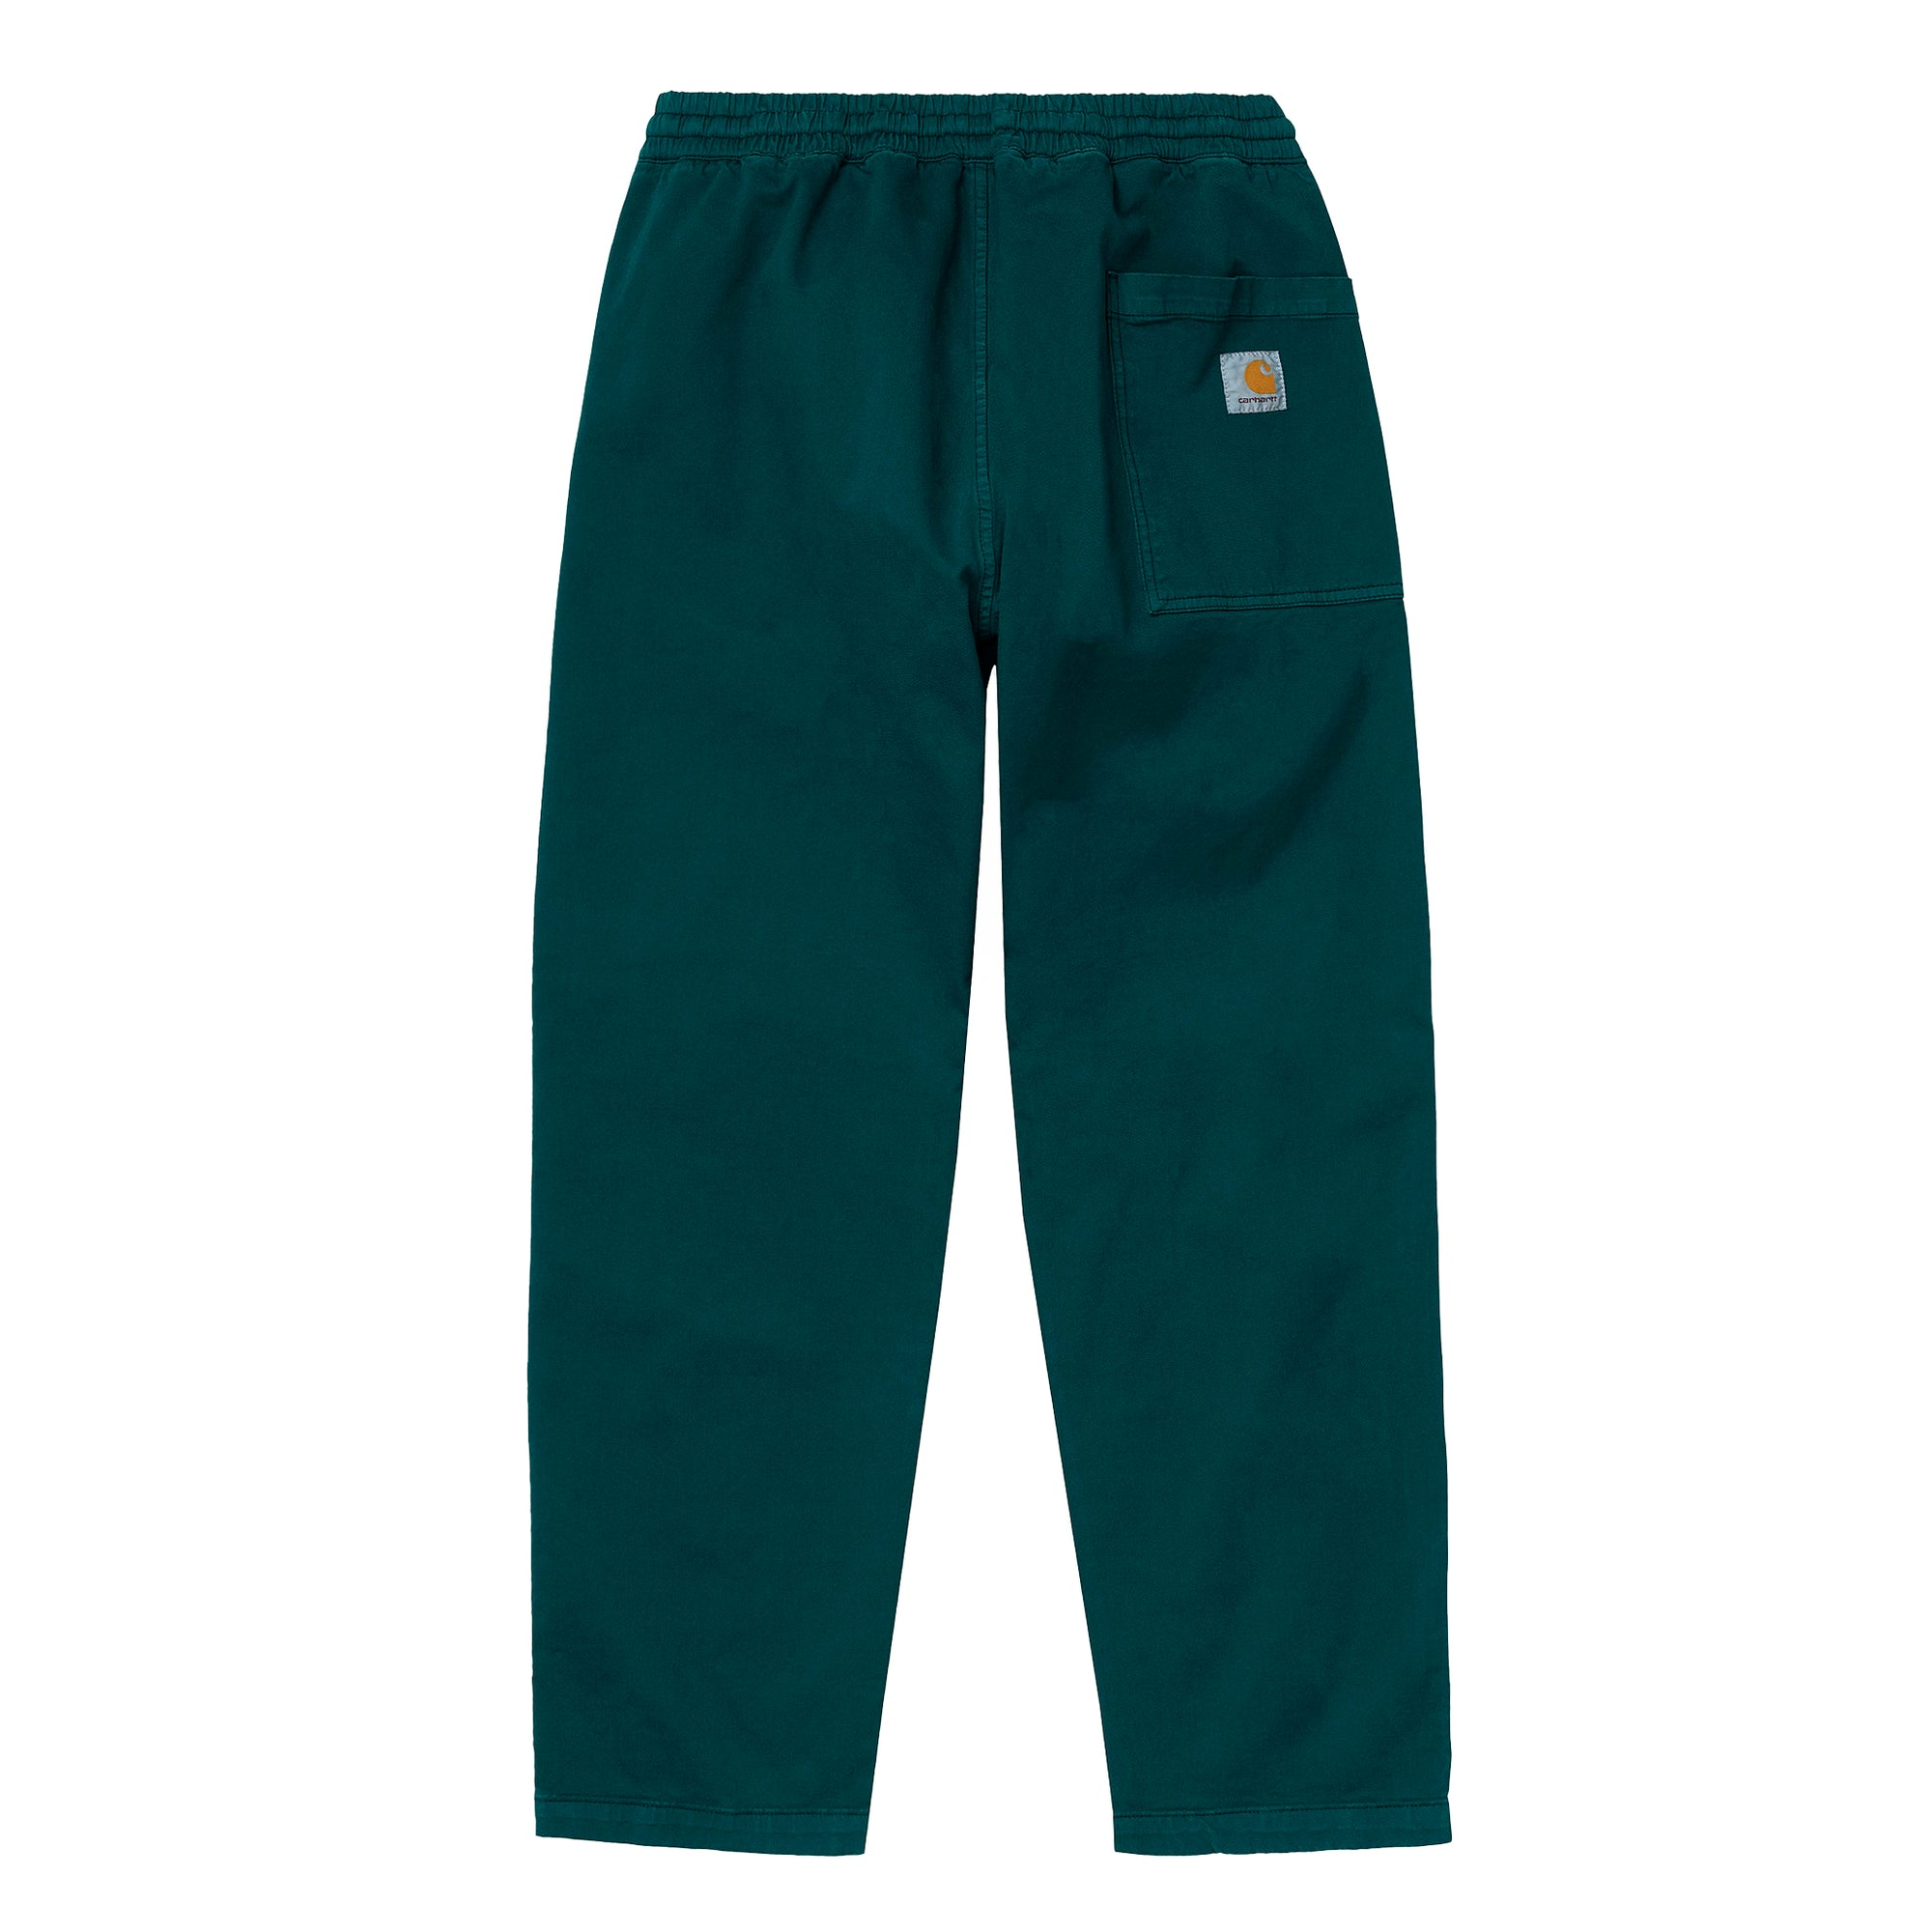 Carhartt WIP Lawton Pant: Deep Lagoon - The Union Project